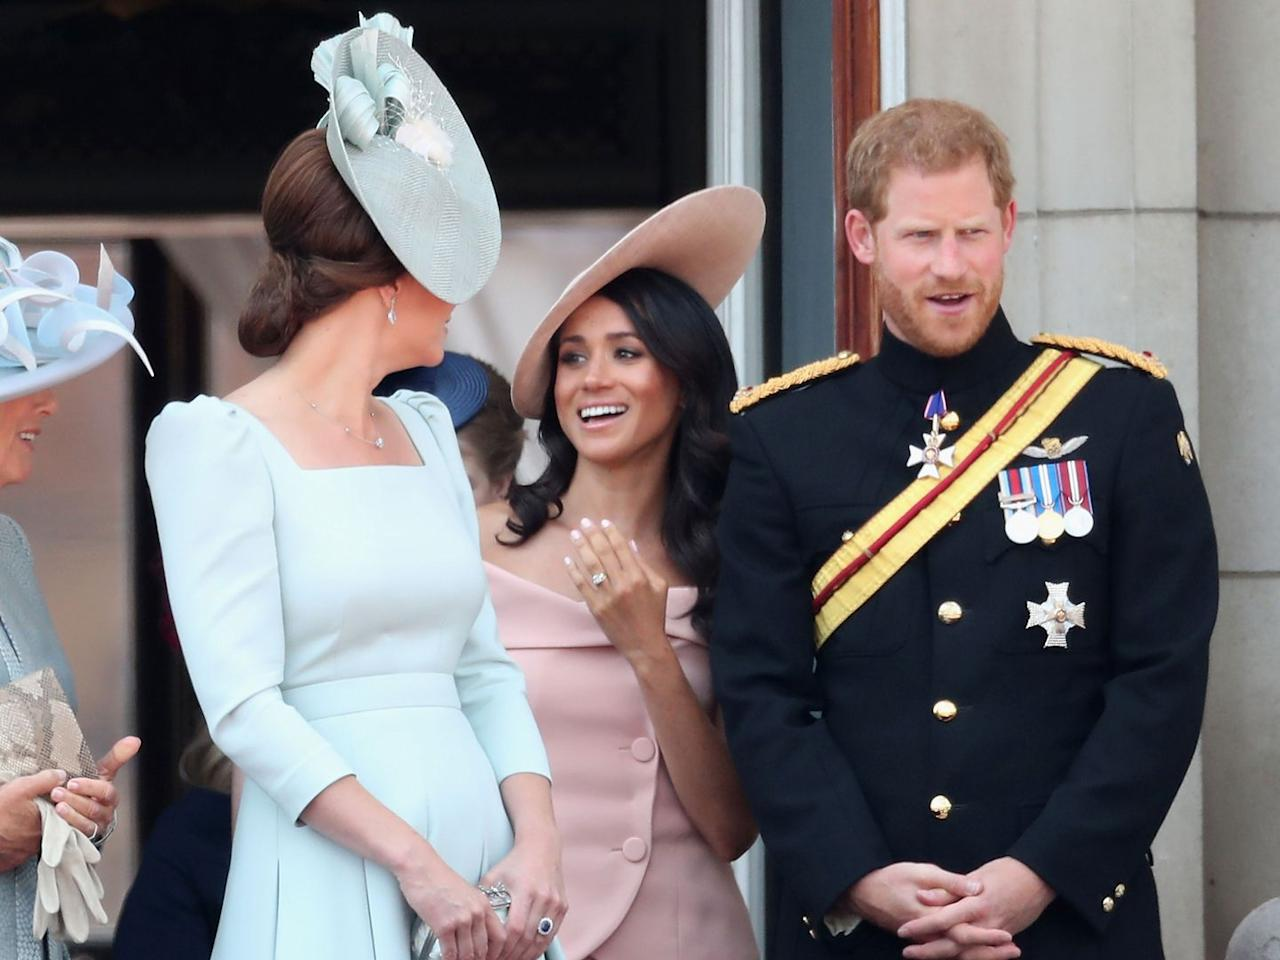 """<p>Although <a rel=""""nofollow"""" href=""""https://www.harpersbazaar.com/uk/celebrities/news/a21250006/meghan-markle-prince-harry-trooping-colour-parade-support-words-nervous/"""">Meghan was said to be nervous</a>, she looked at ease when chatting to Kate.</p>"""